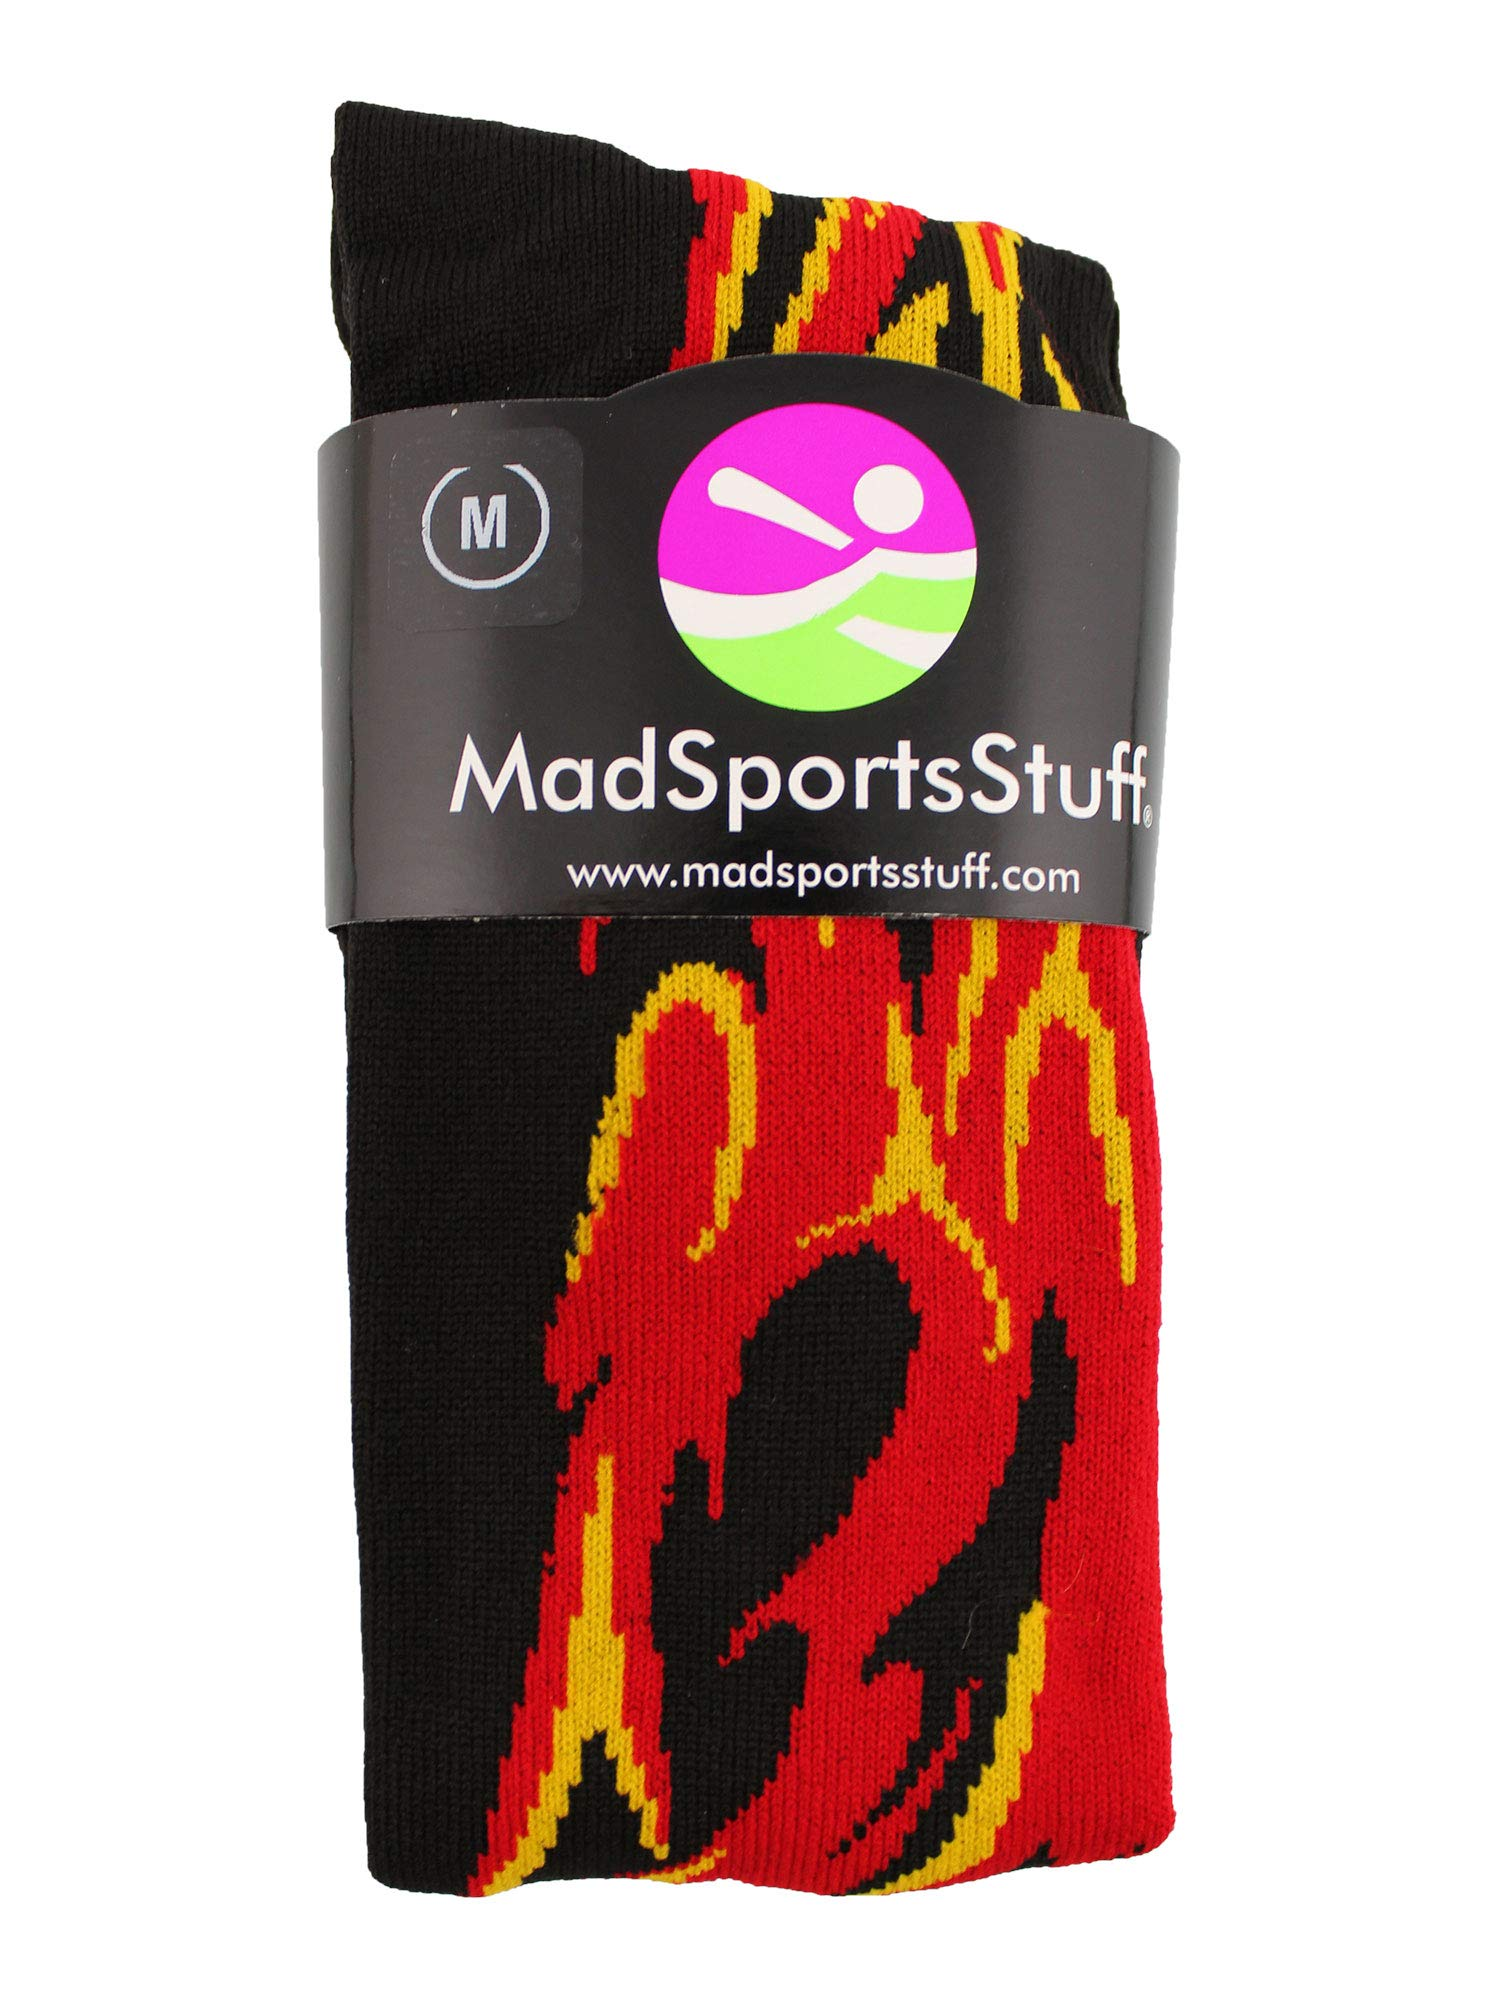 MadSportsStuff Flame Socks Athletic Over The Calf Socks (Black/Red/Gold, Small) by MadSportsStuff (Image #2)